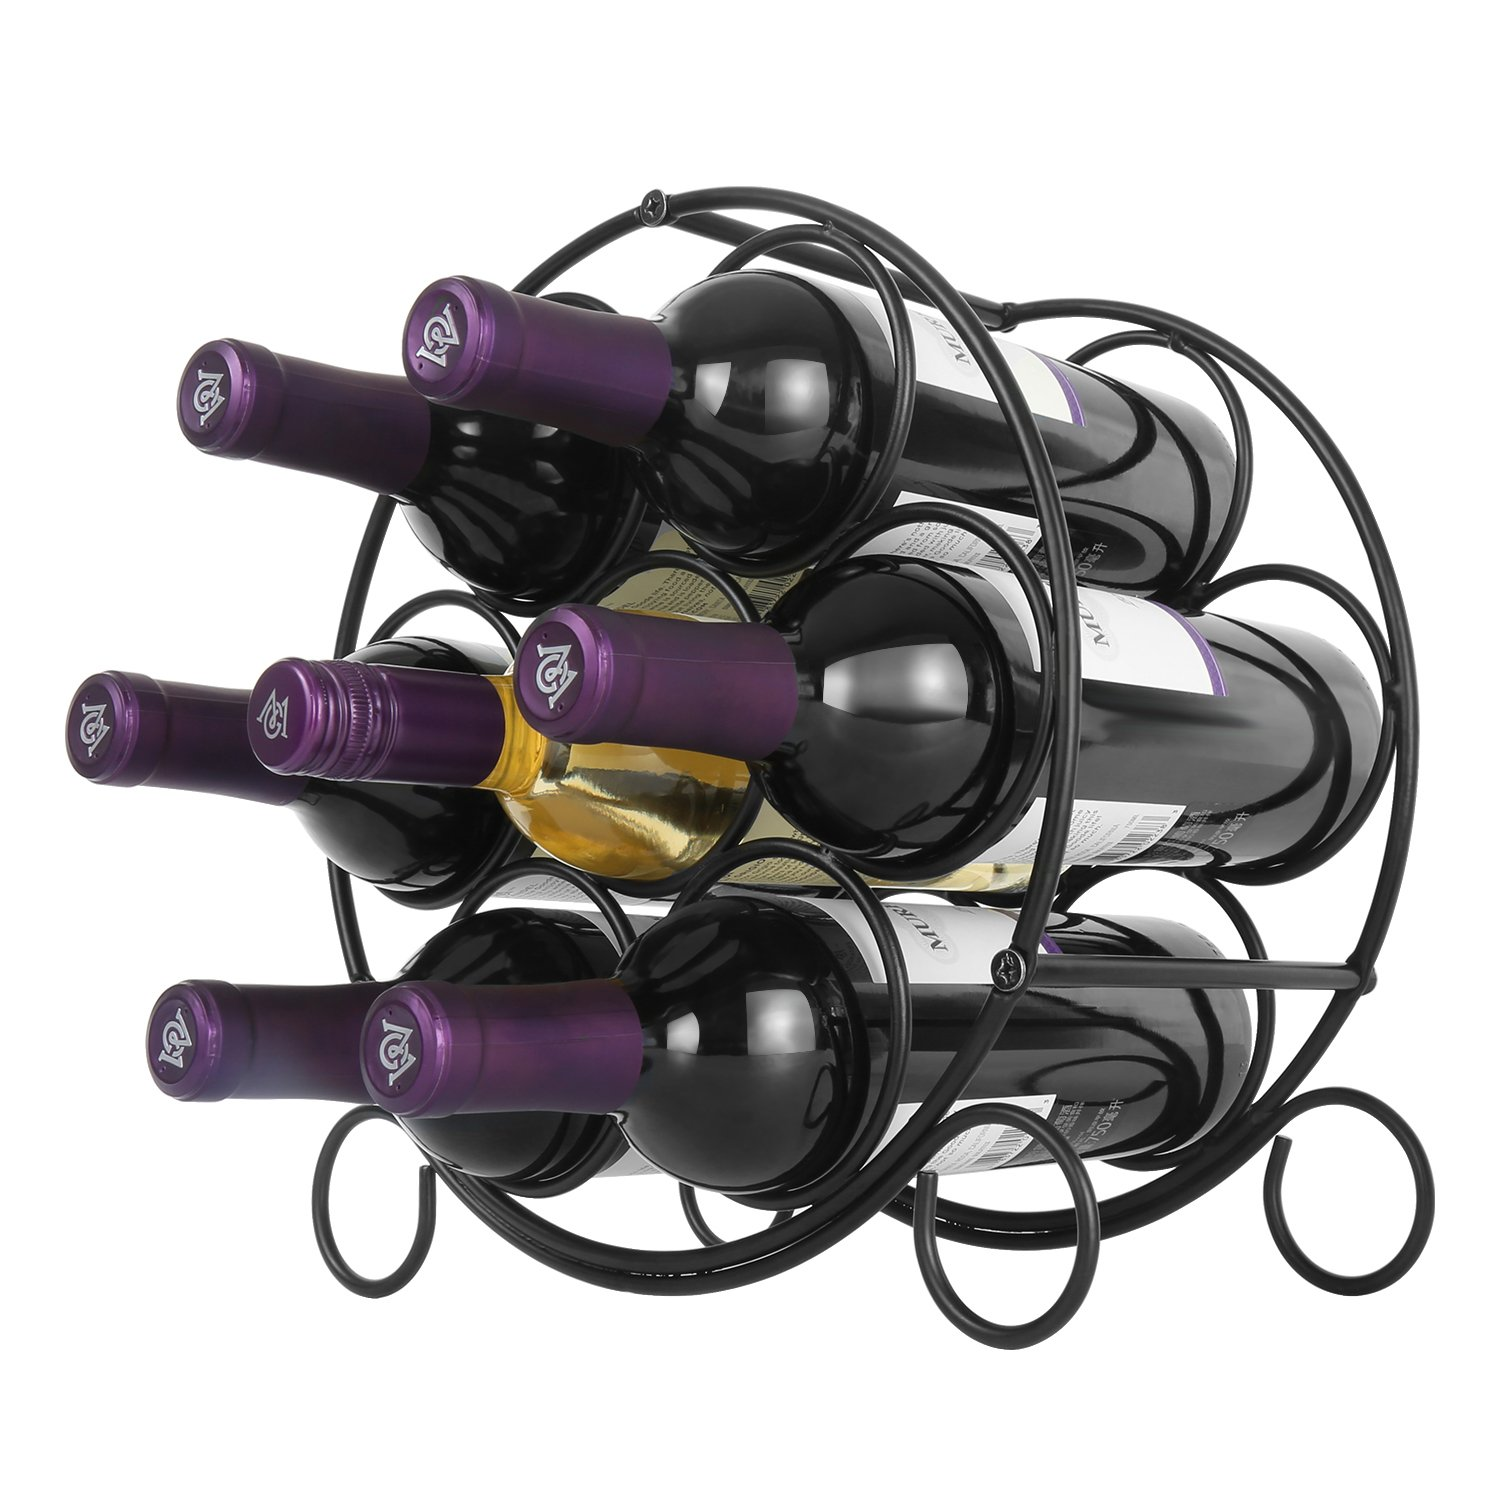 Linkfu Countertop Wine Rack Free Standing Tabletop Metal - Hold 7 Bottles - Wine Storage, Black by Linkfu